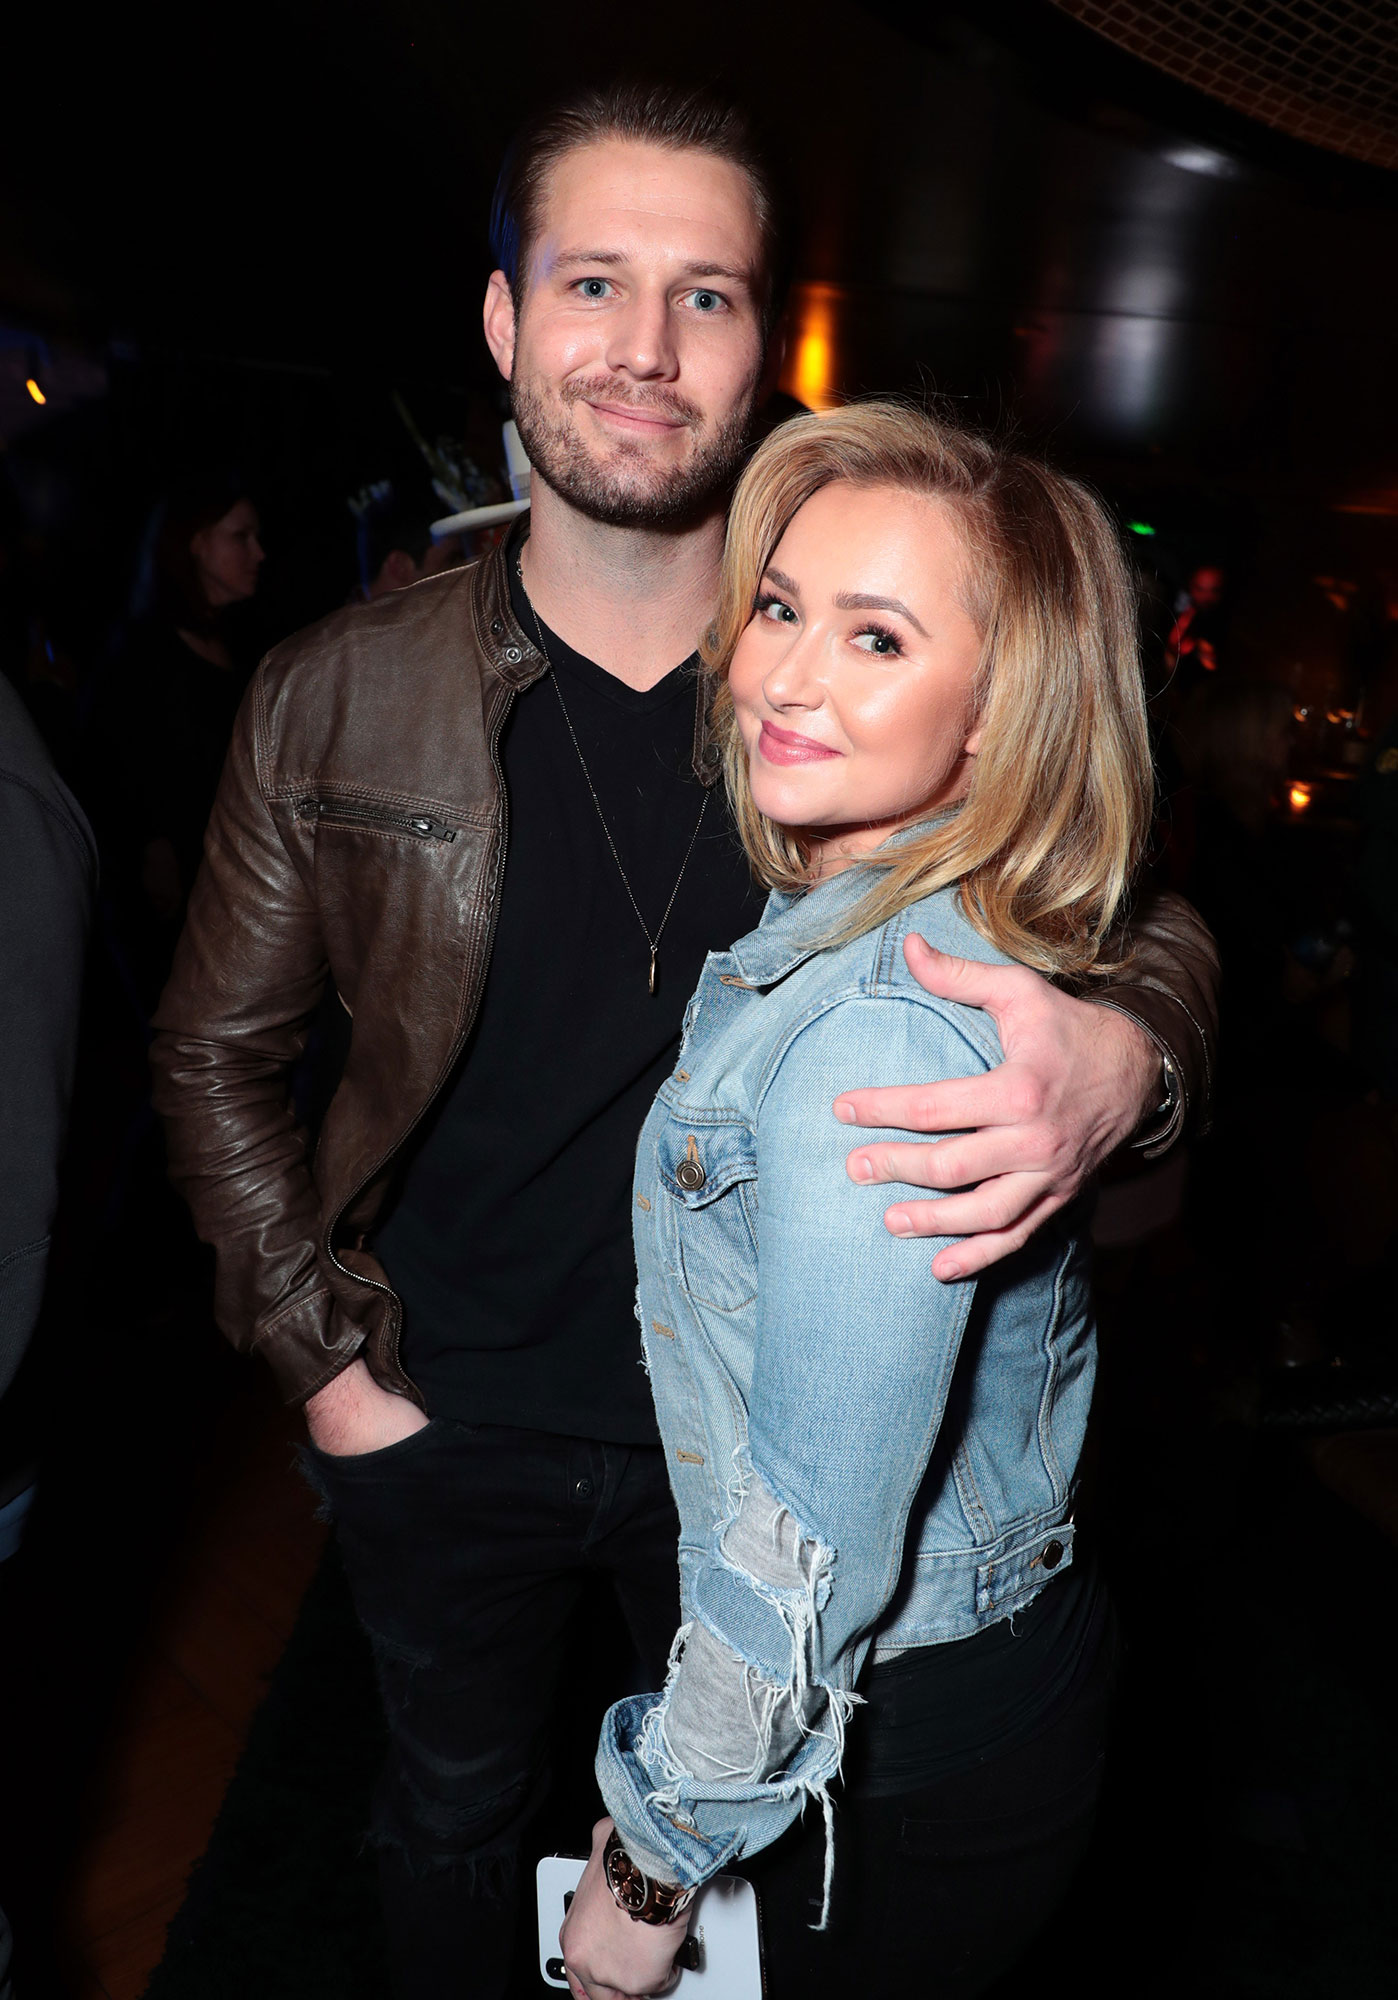 Hayden Panettiere's Family Breaks Silence on Boyfriend Brian Hickerson's Domestic Violence Case